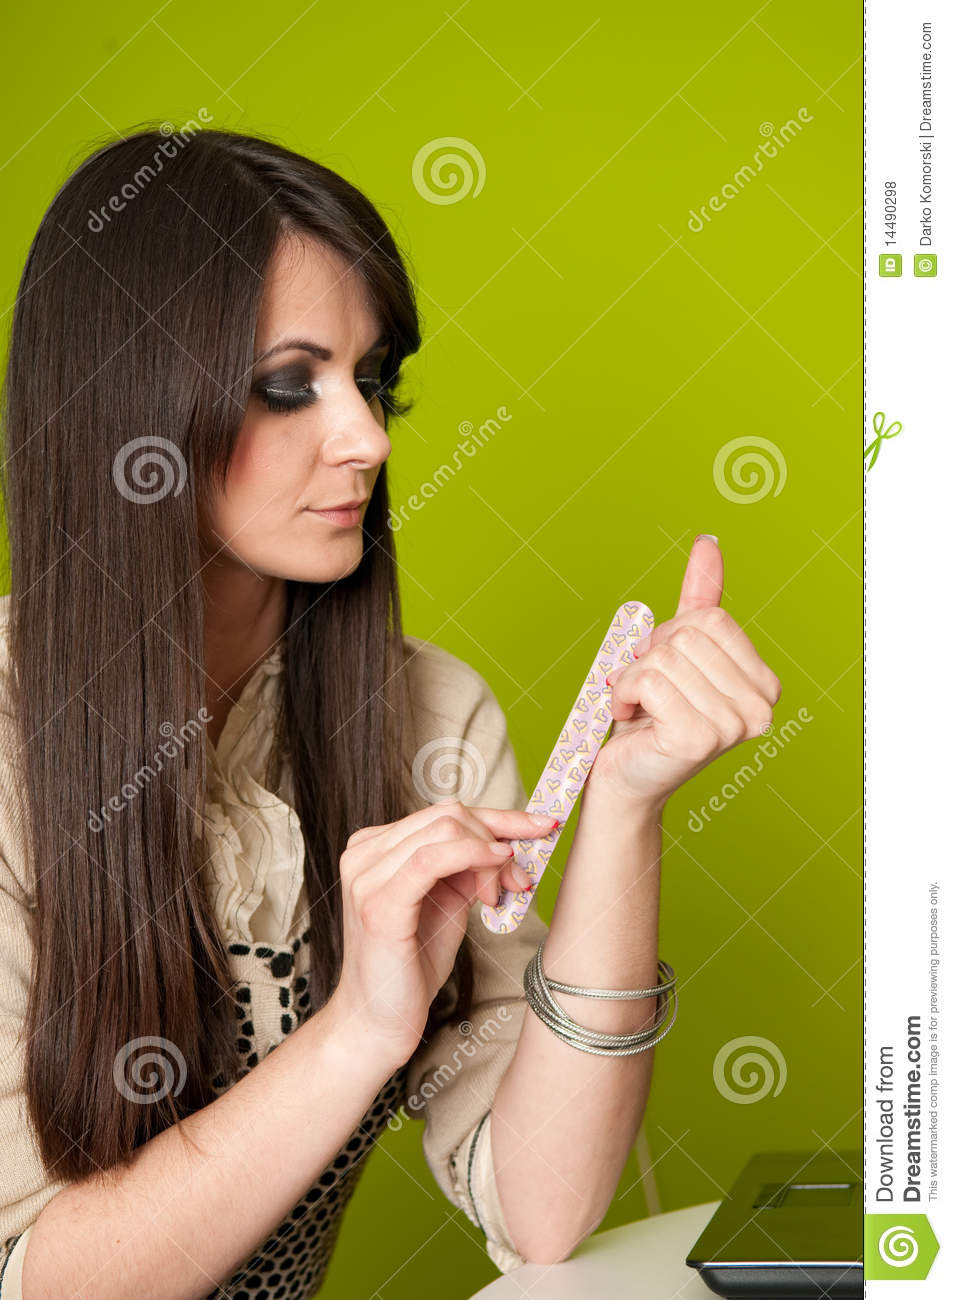 Businesswoman filing nails stock photo. Image of attractive - 14490298